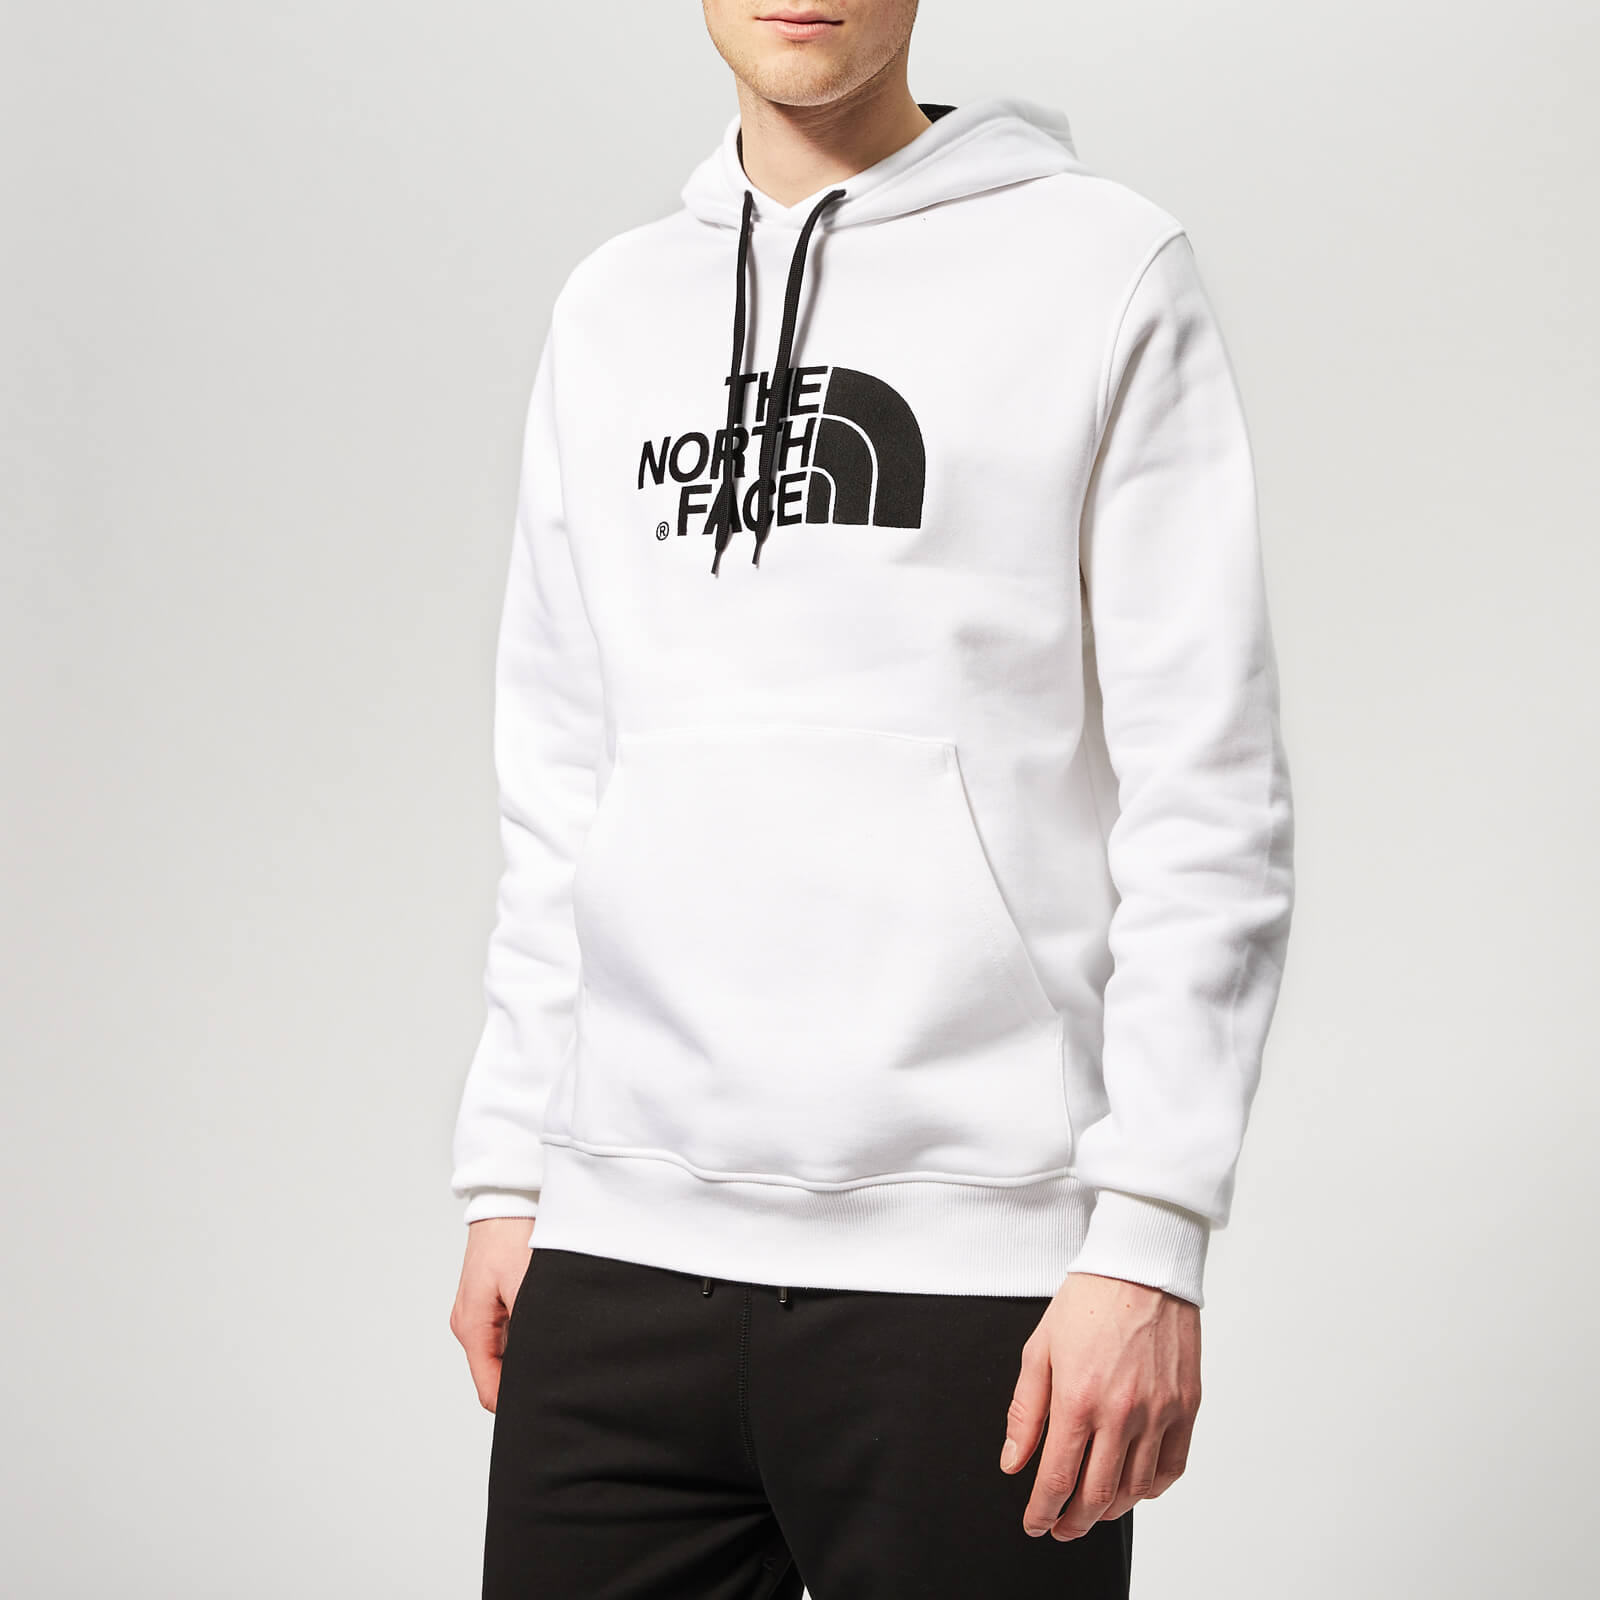 bb5708685 The North Face Men's Drew Peak Pullover Hoody - TNF White